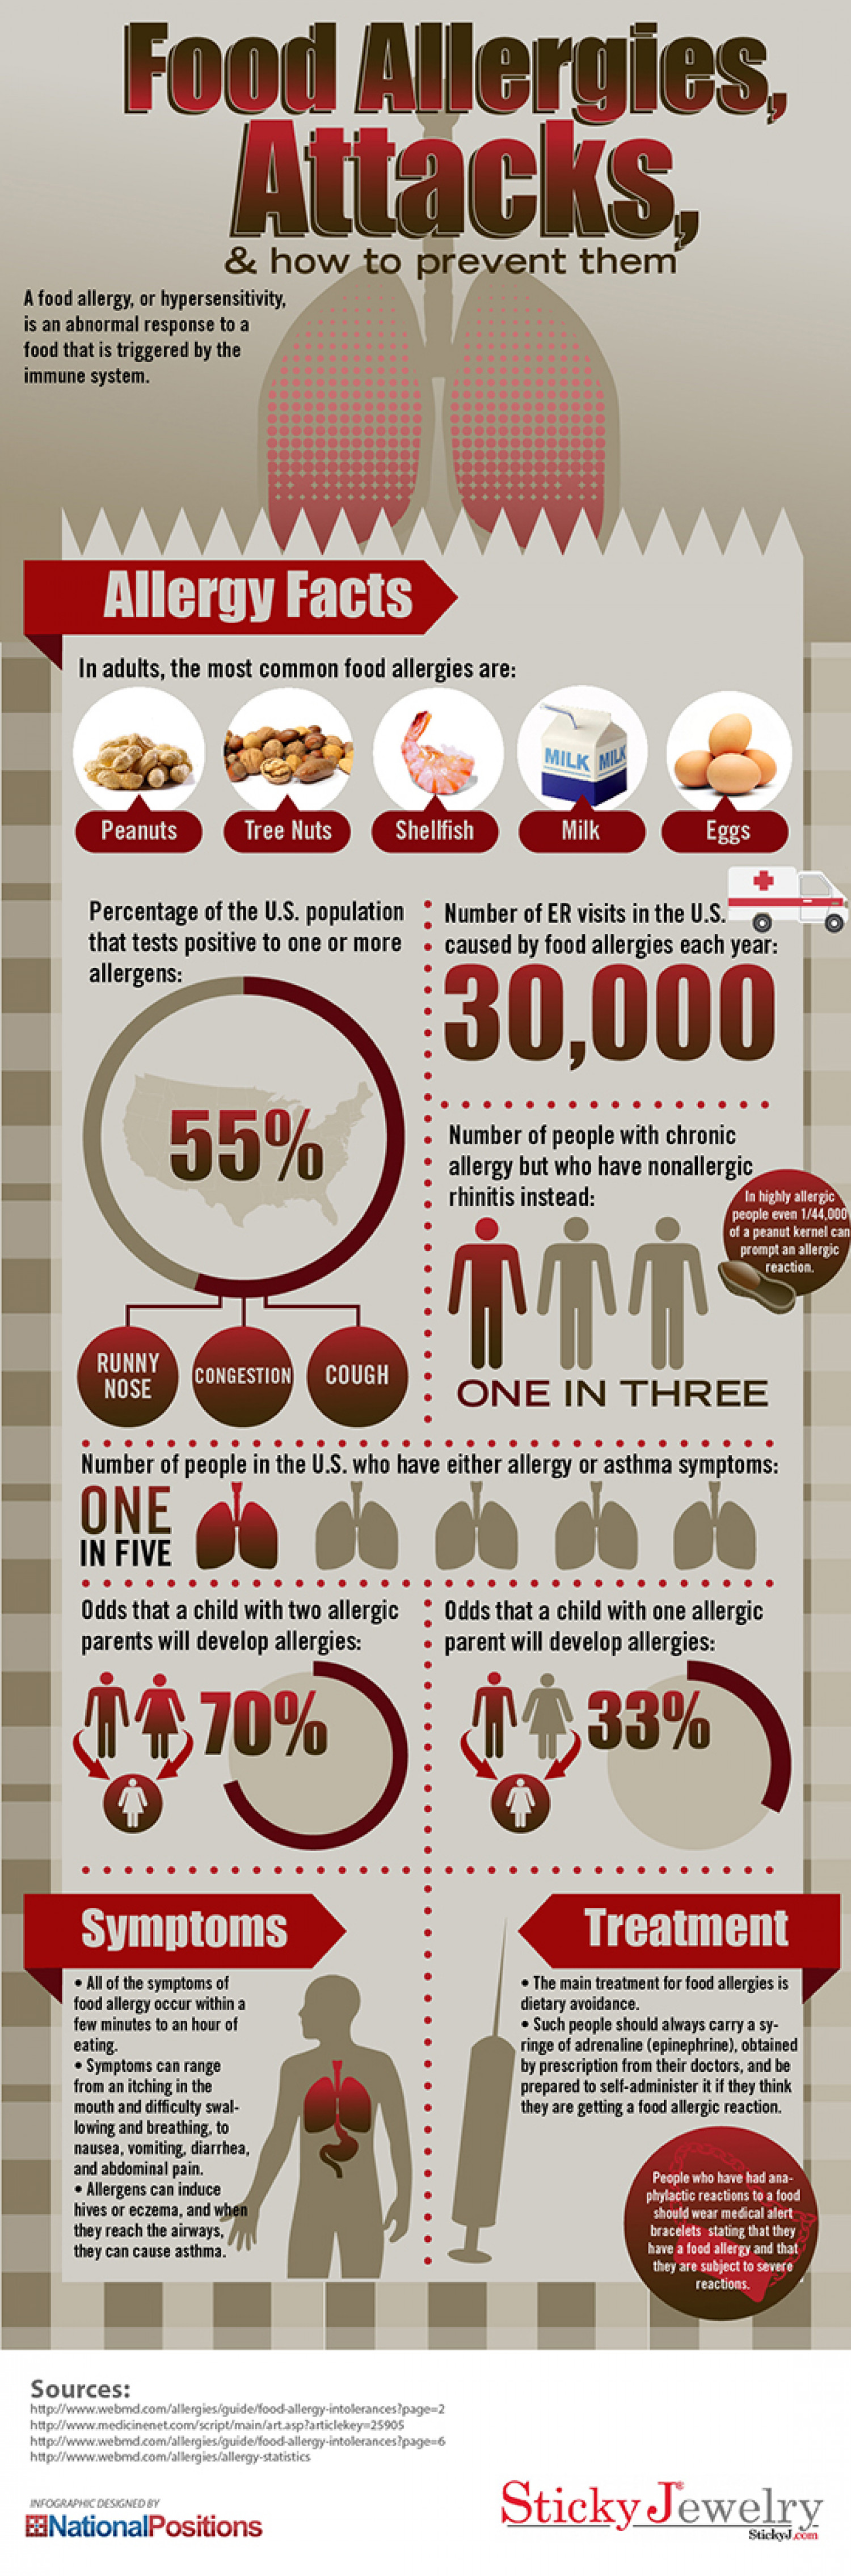 Food Allergies and Attacks Infographic